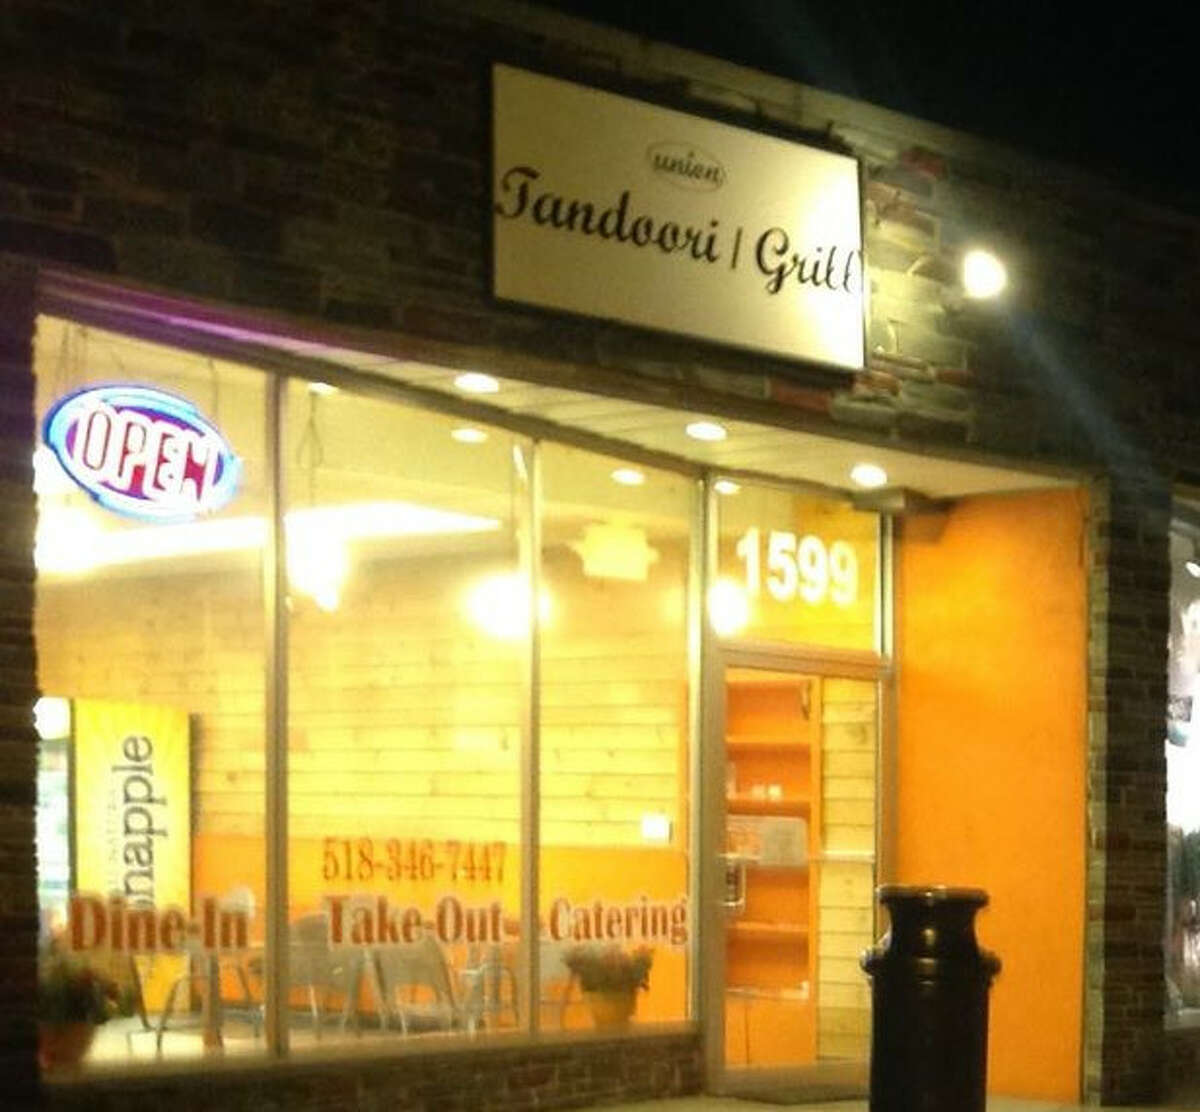 Closed: Tandoori Grill, 1599 Union St. in Schenectady. The restaurant closed in February 2020.